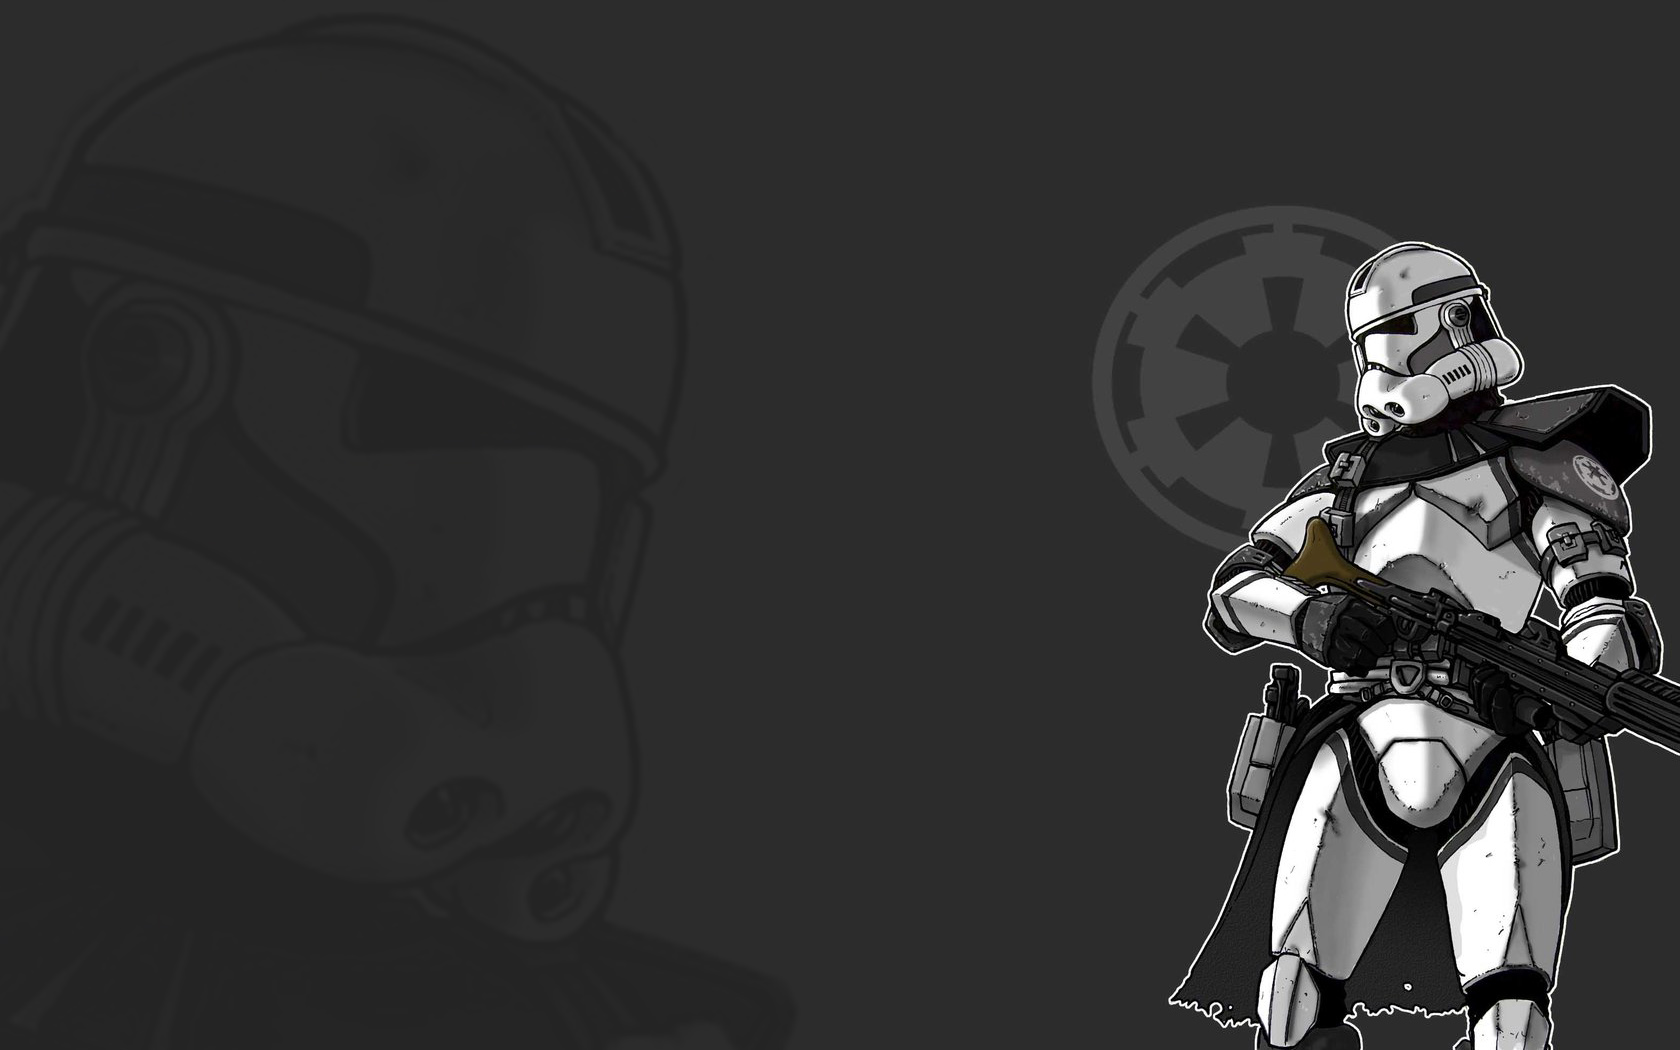 Star Wars Res: 1680x1050 / Size:252kb. Views: 243758